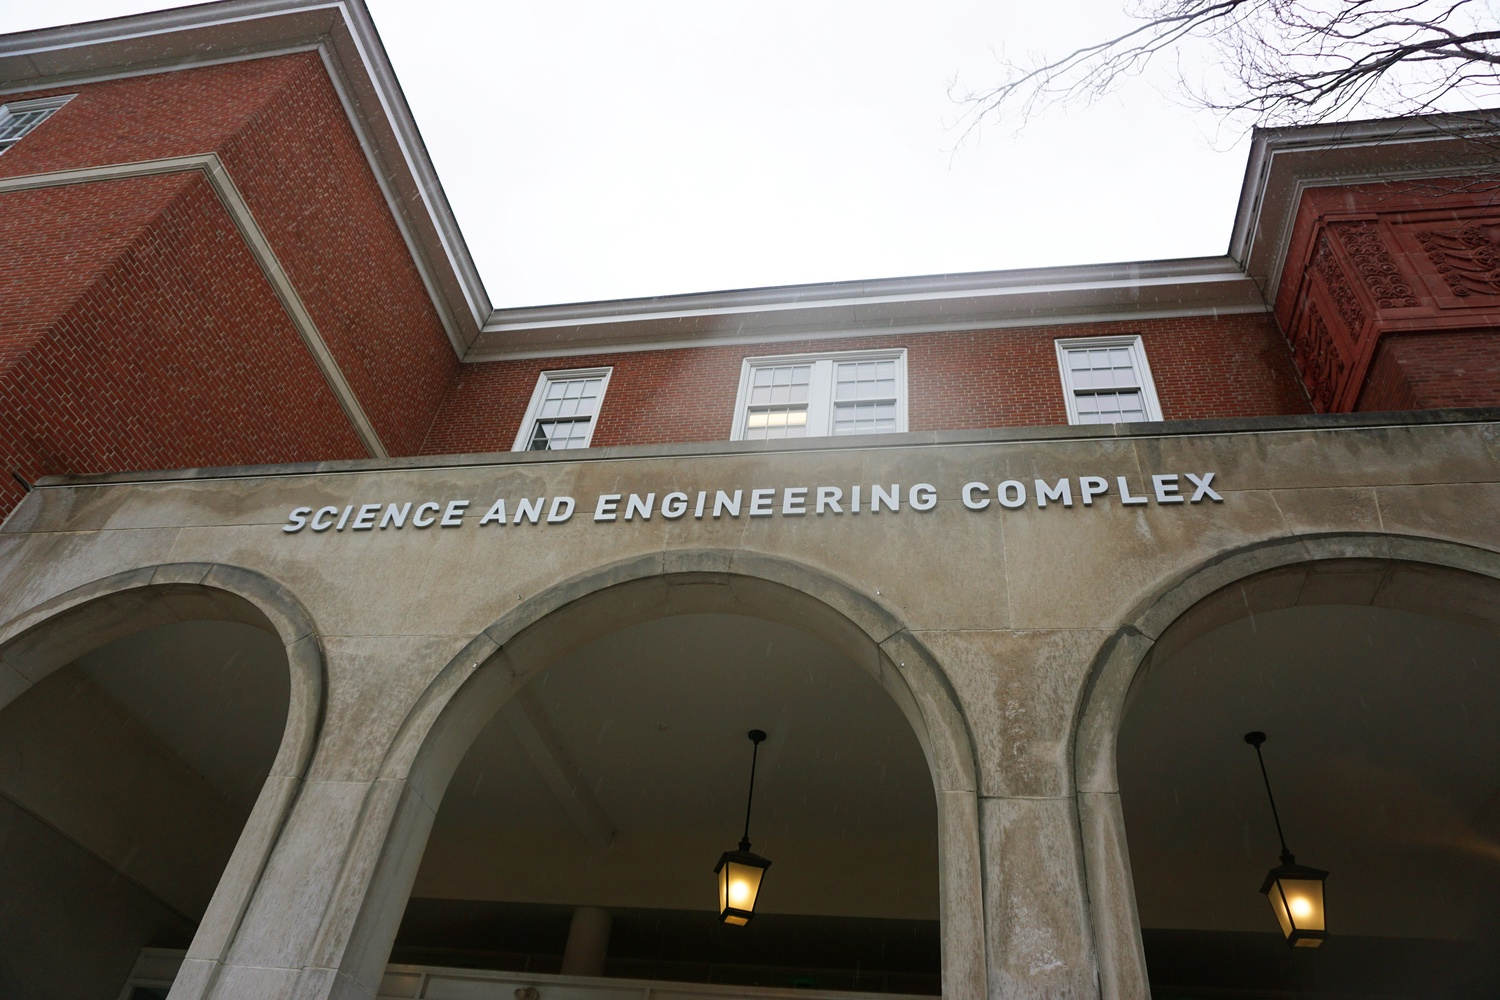 The Science and Engineering Complex is one of the recently completed construction projects completed at Tufts University School of Engineering.